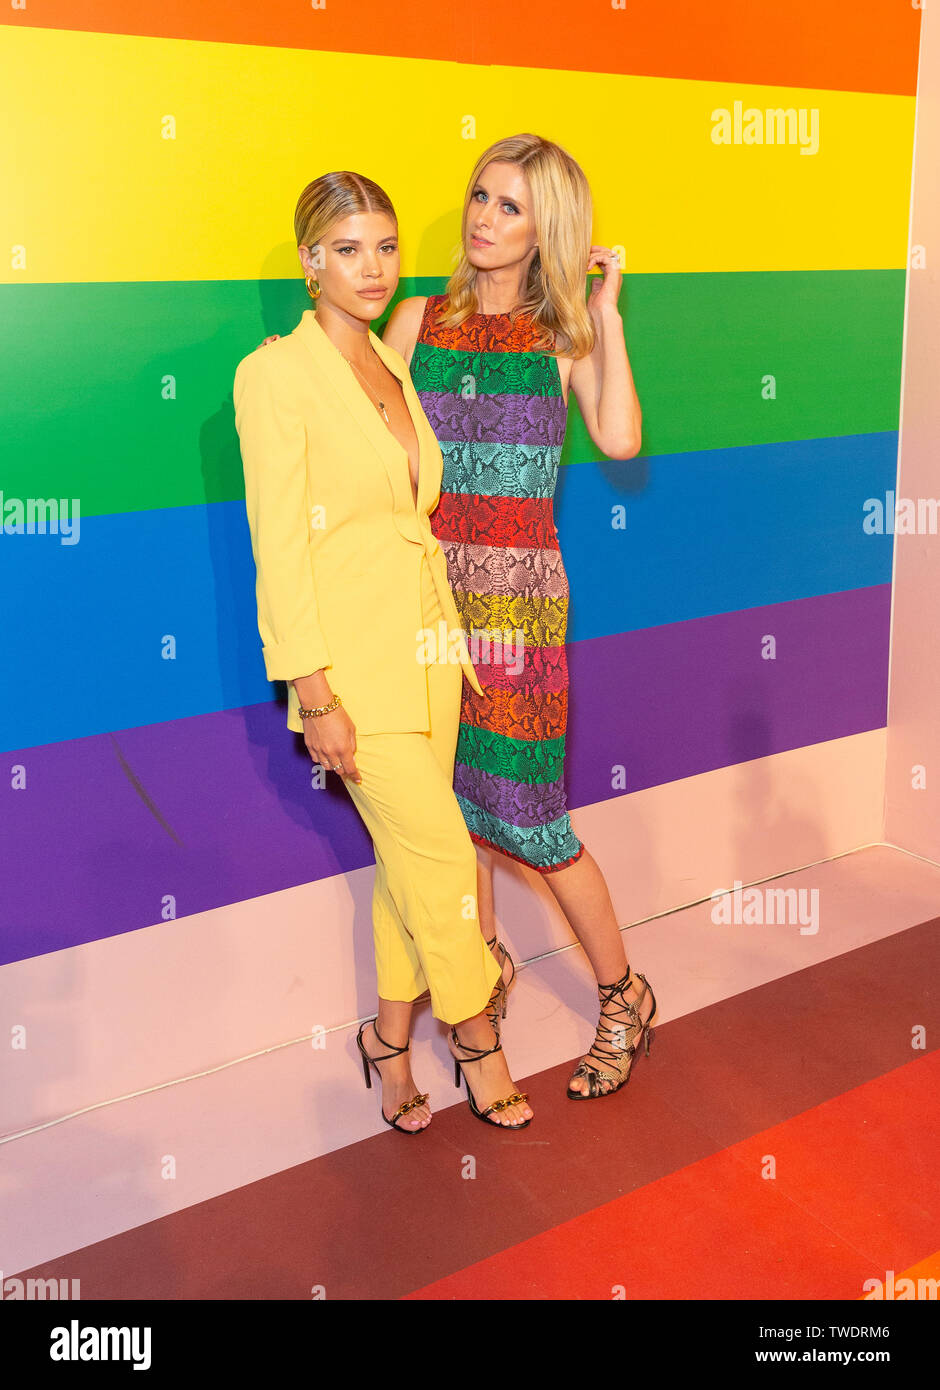 New York, United States. 18th June, 2019. Sofia Richie and Nicky Hilton Rothschild attend the Summer Kickoff Party for WorldPride hosted by Alice   Olivia by Stacey Bendet and the Trevor Project at Industria Studio Credit: Lev Radin/Pacific Press/Alamy Live News - Stock Image